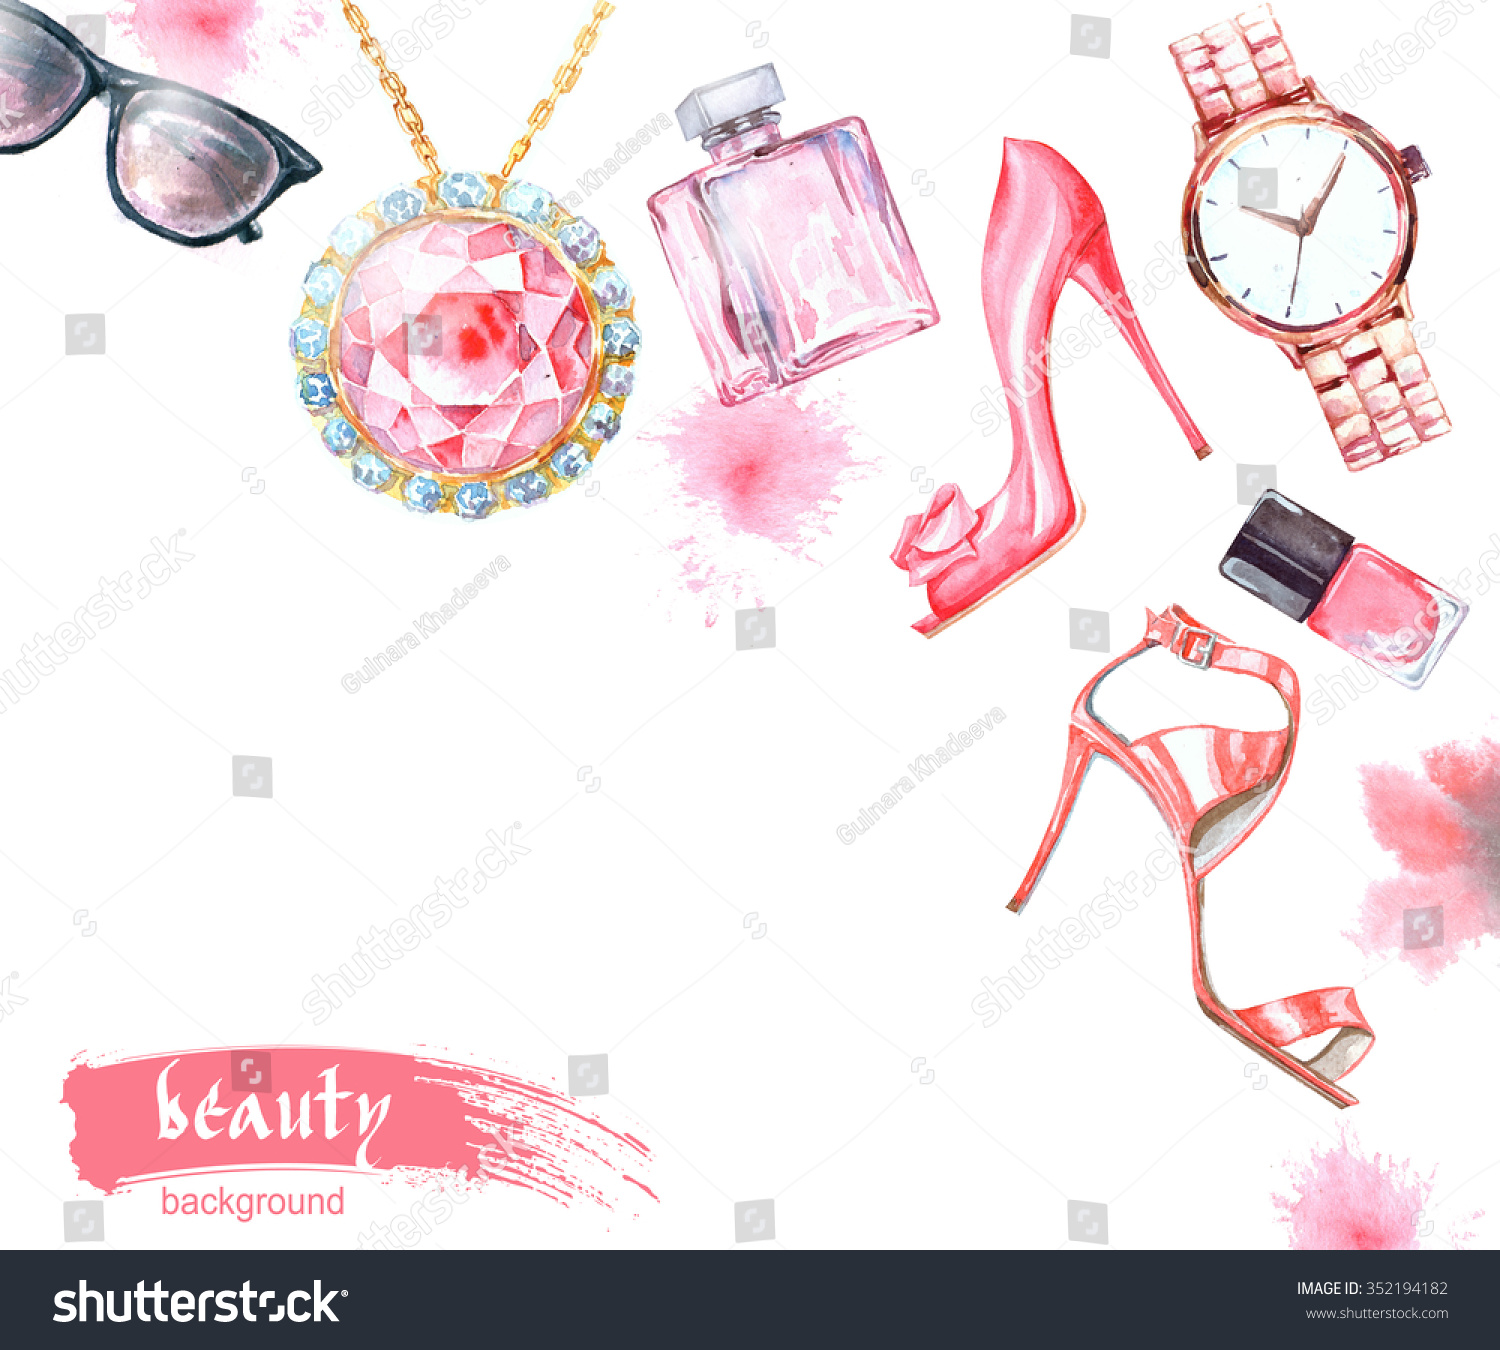 Fashionable Clothes Shoes Jeans Lipsticks Nail Polish: Watercolor Fashion Cosmetics Background Make Artist Stock